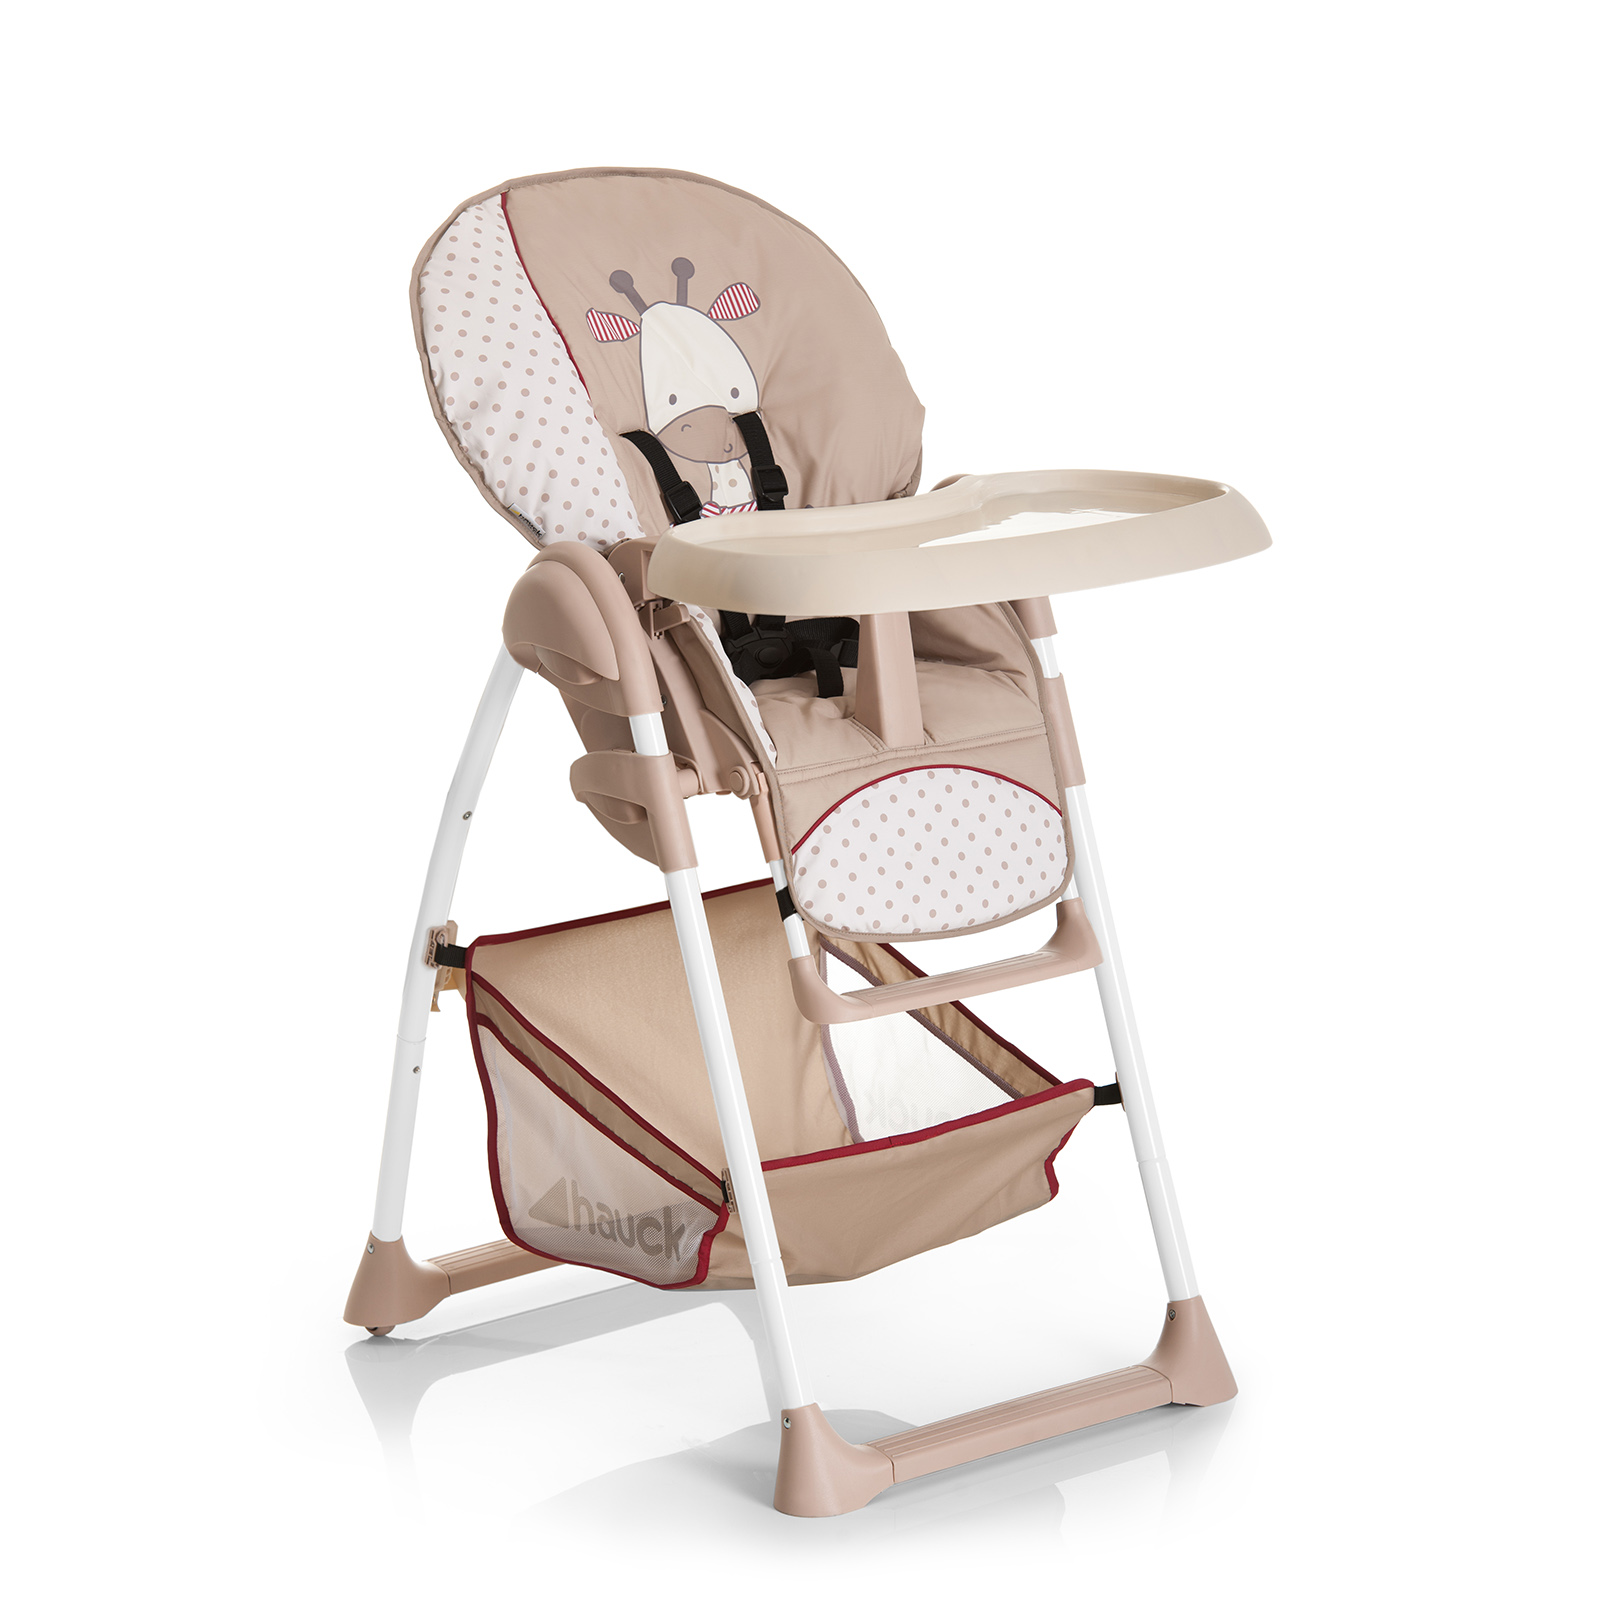 Hauck High Chair Details About New Hauck Sit N Relax 2 In 1 Highchair Baby High Chair Bouncer Giraffe